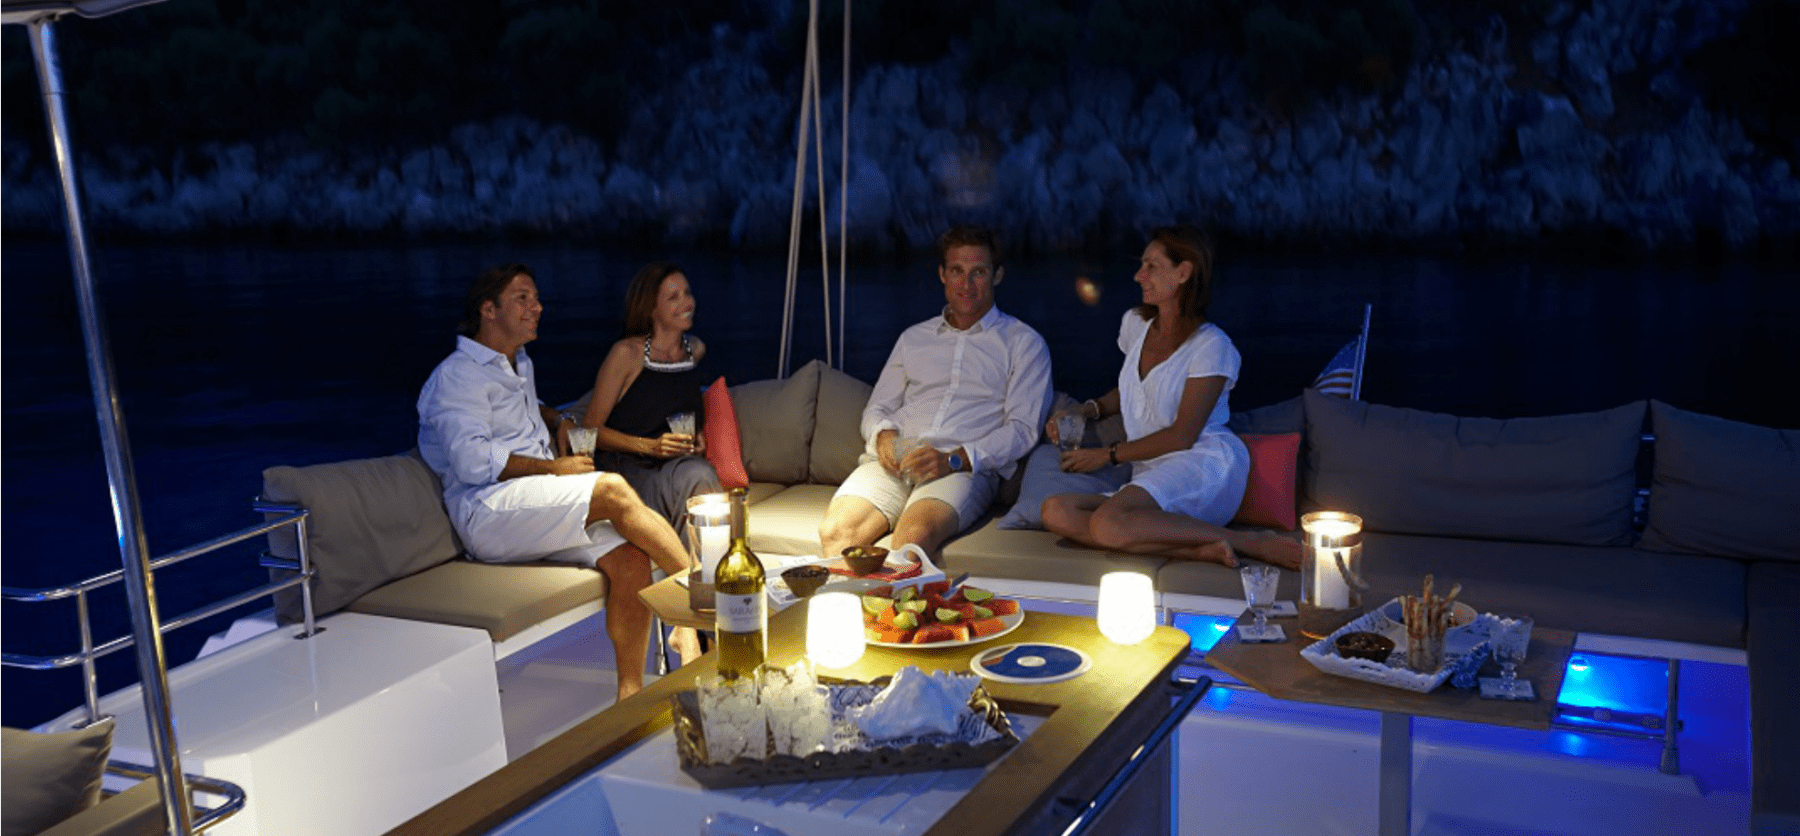 2 couples enjoying a beautiful and romantic evening on the cockpit area of the Pajot Ipanema 58